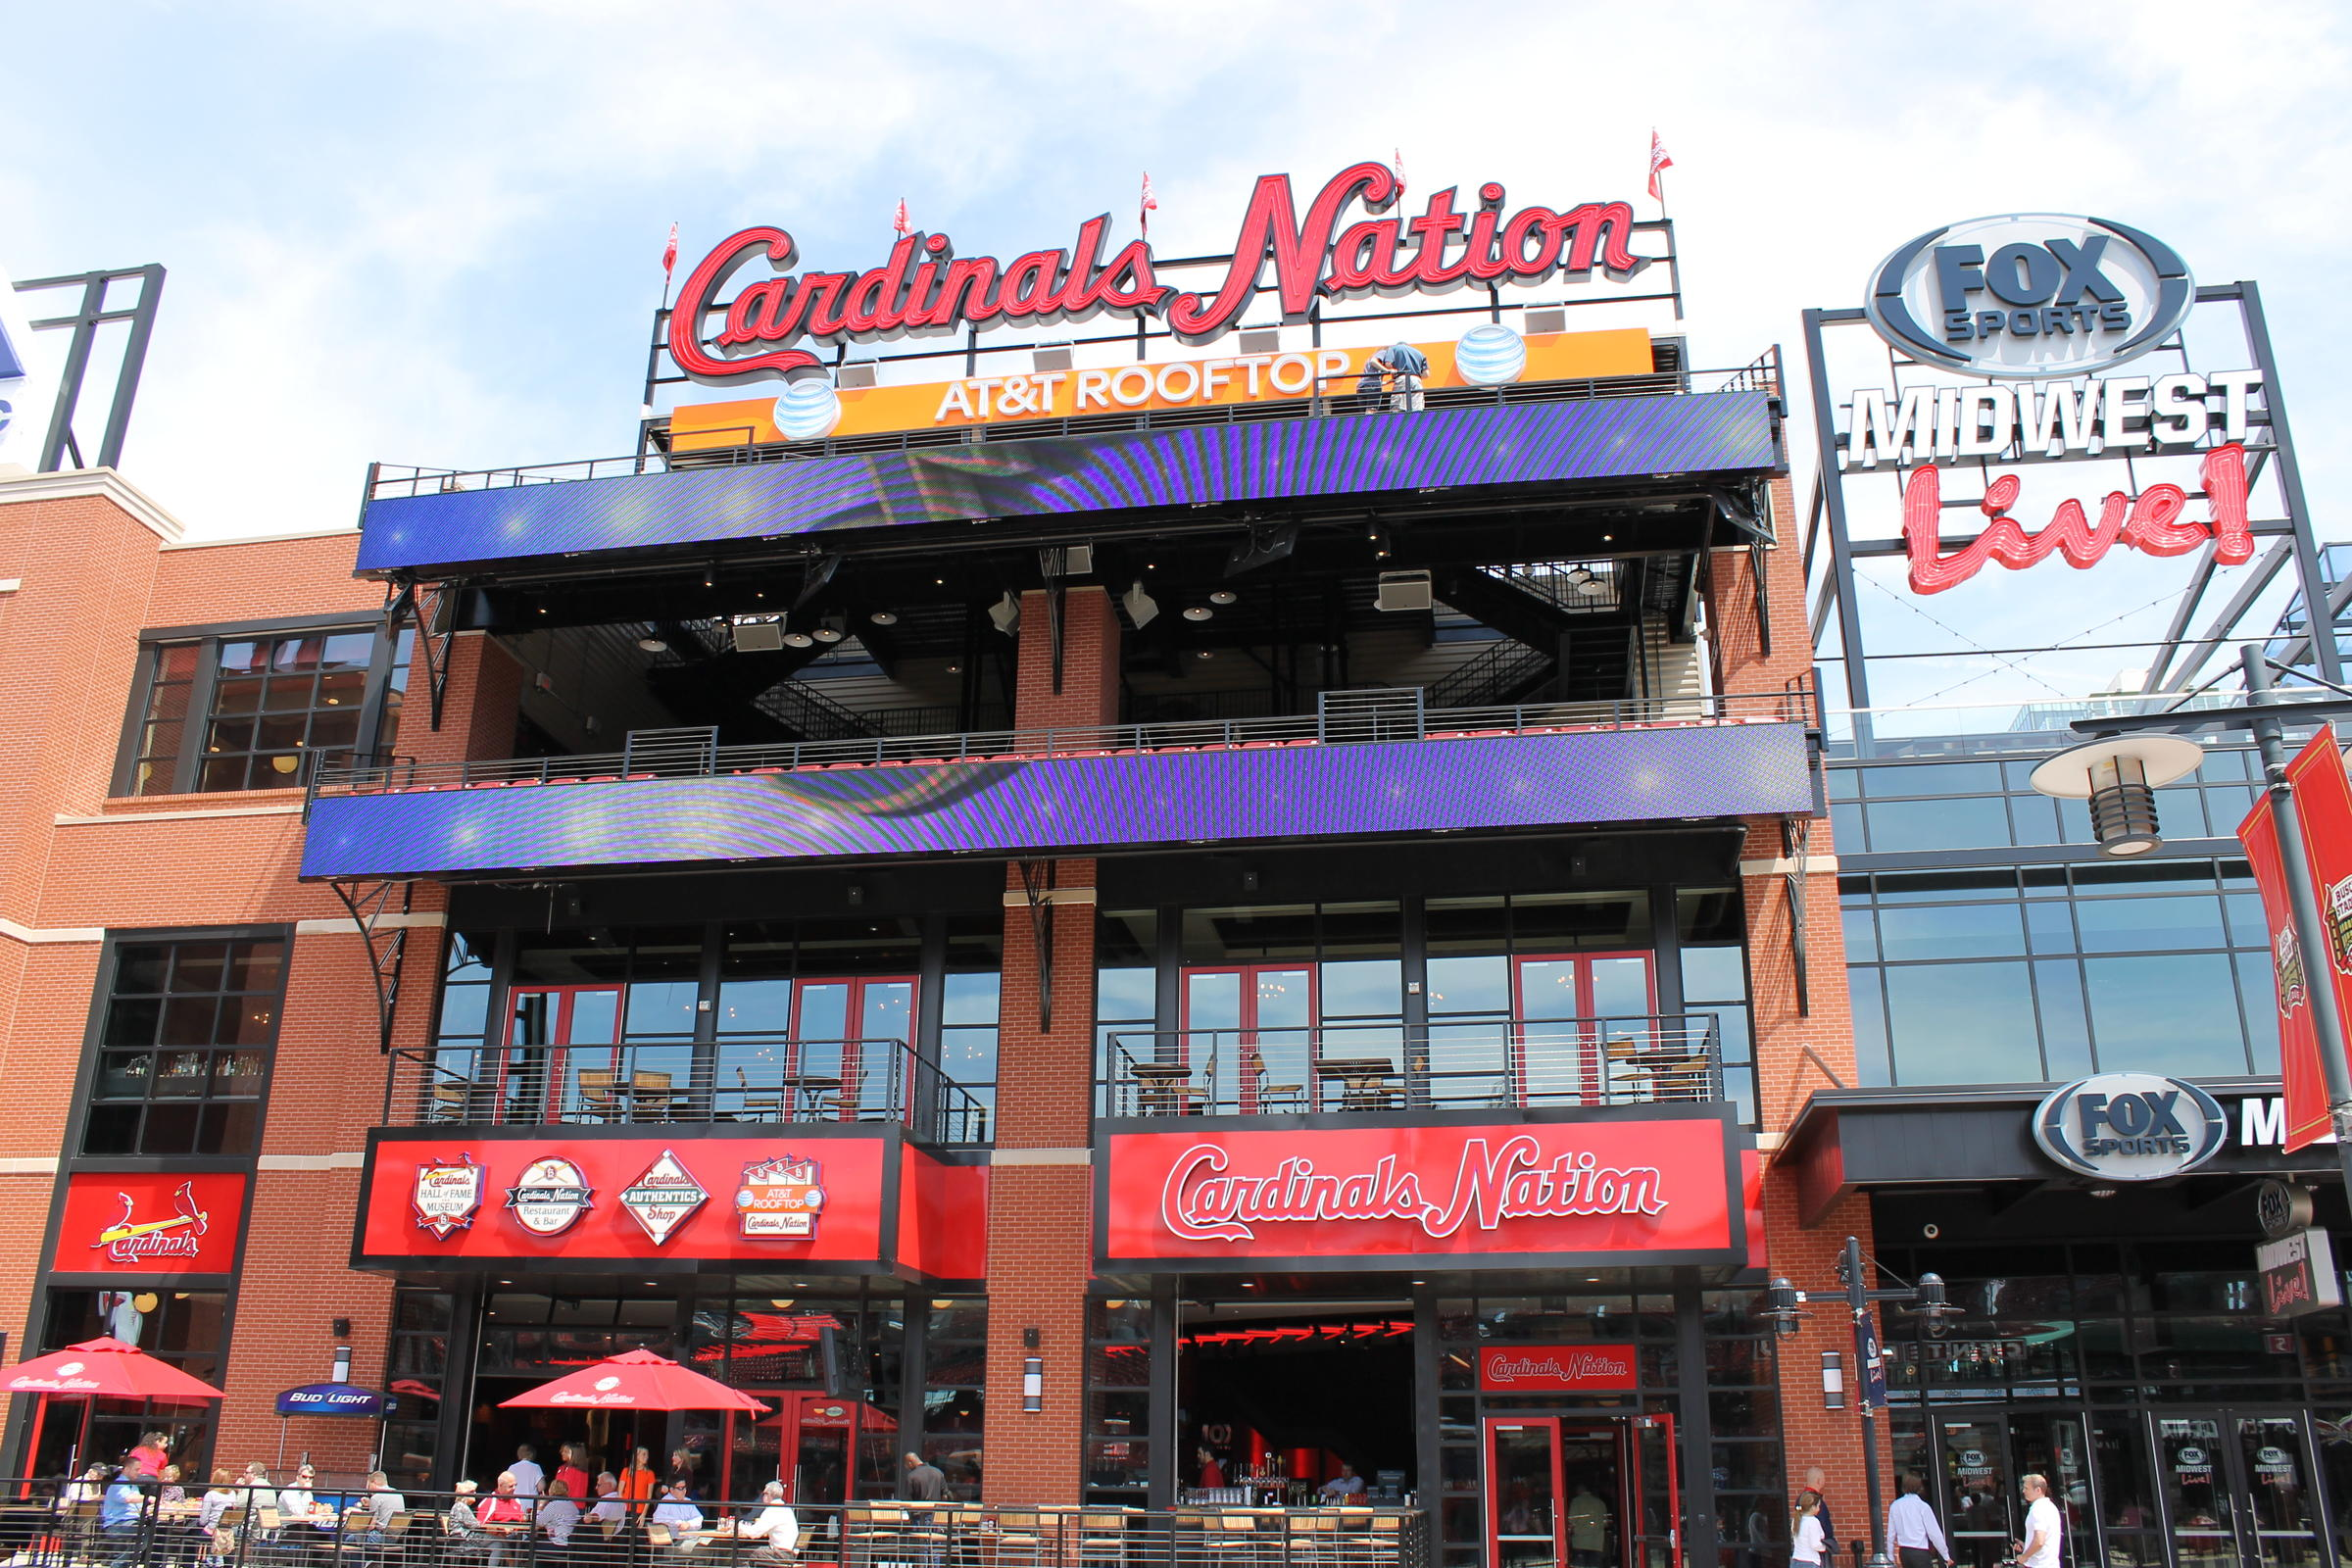 Man Charged With Murder After Shooting At Ballpark Village In STL